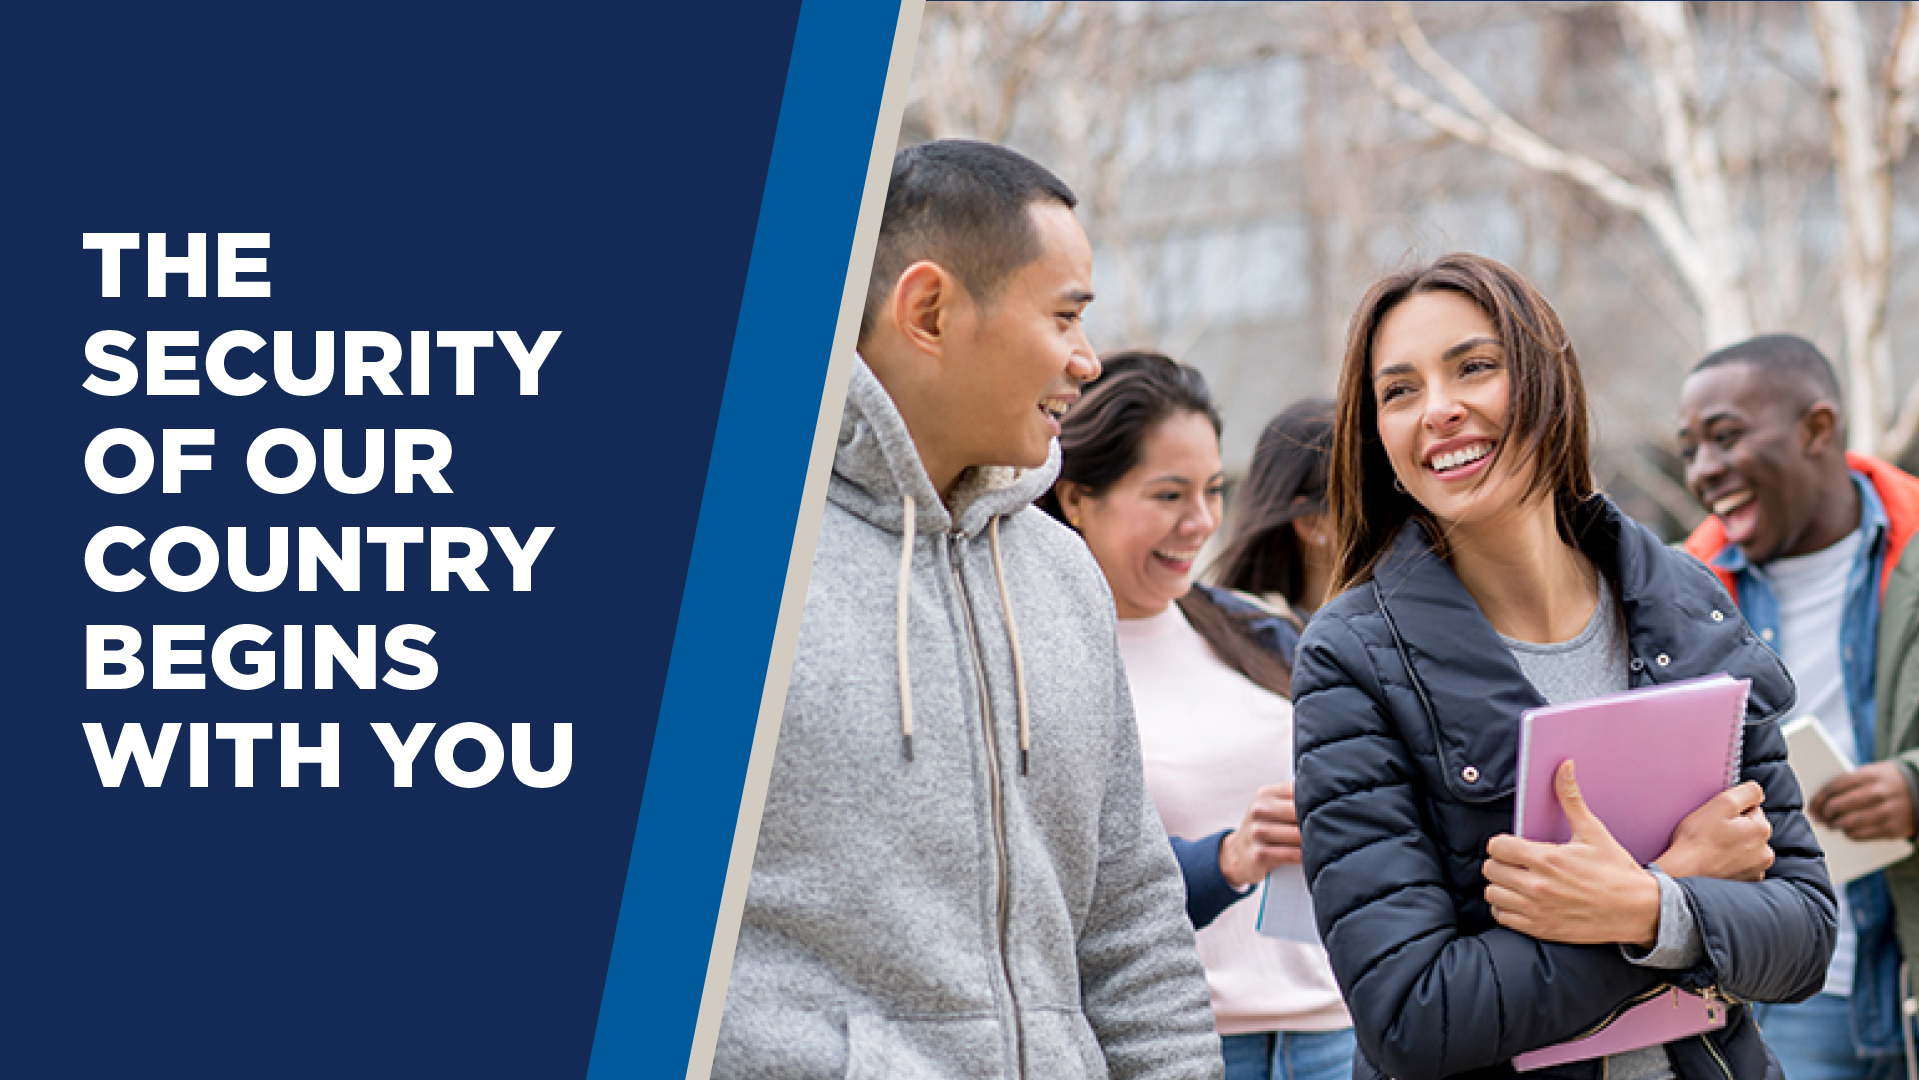 The Security of Our Country Begins with You